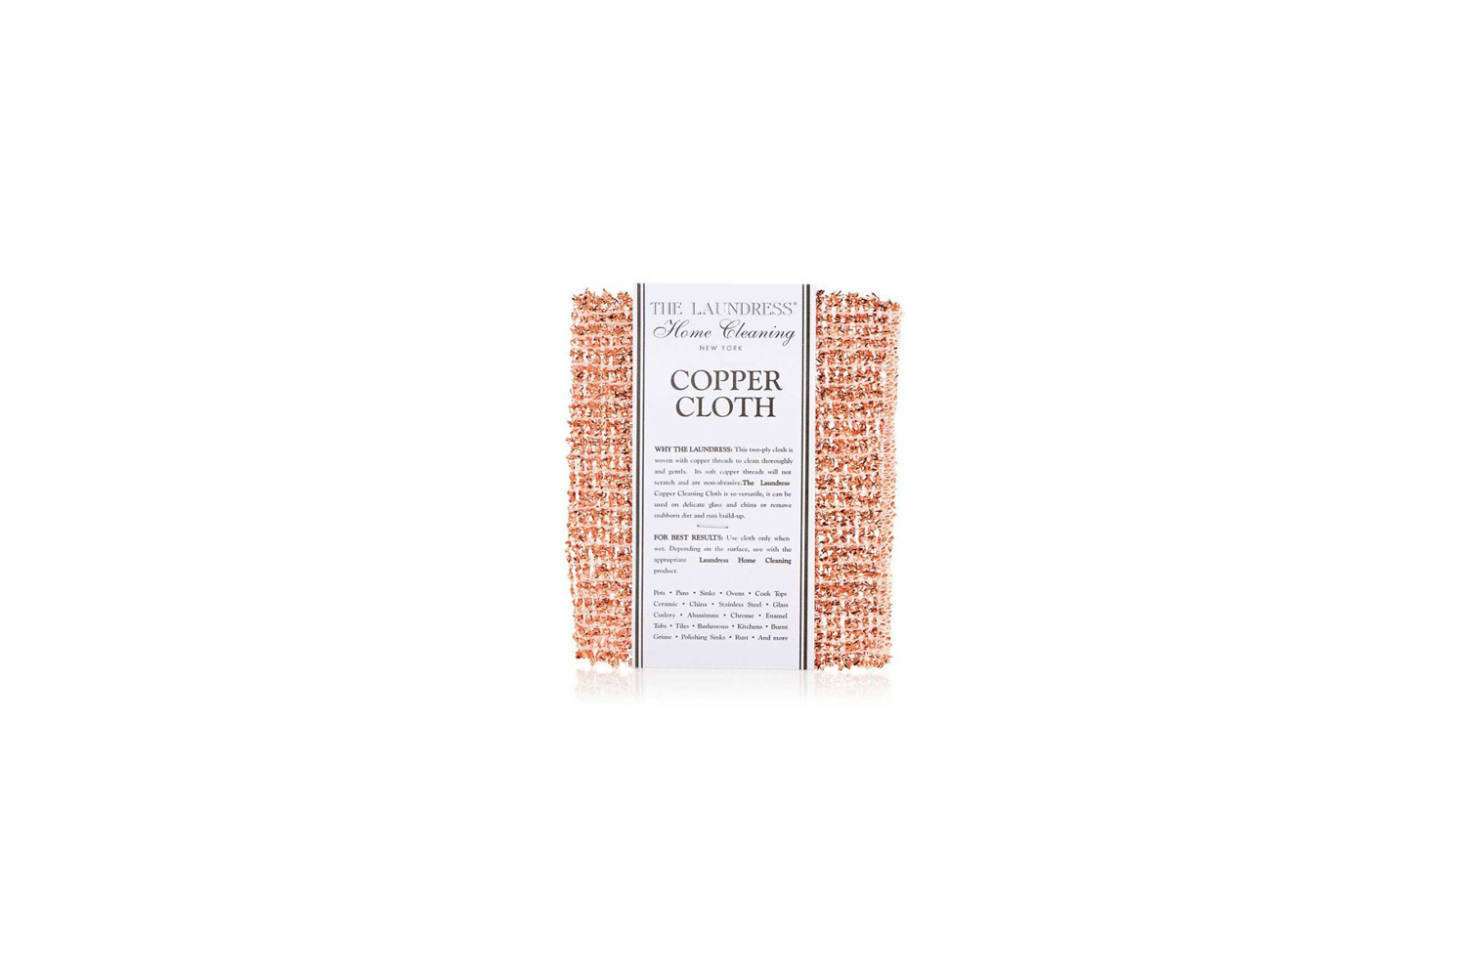 From The Laundress, the classic Copper Cleaning Cloth is $. on Amazon Prime.